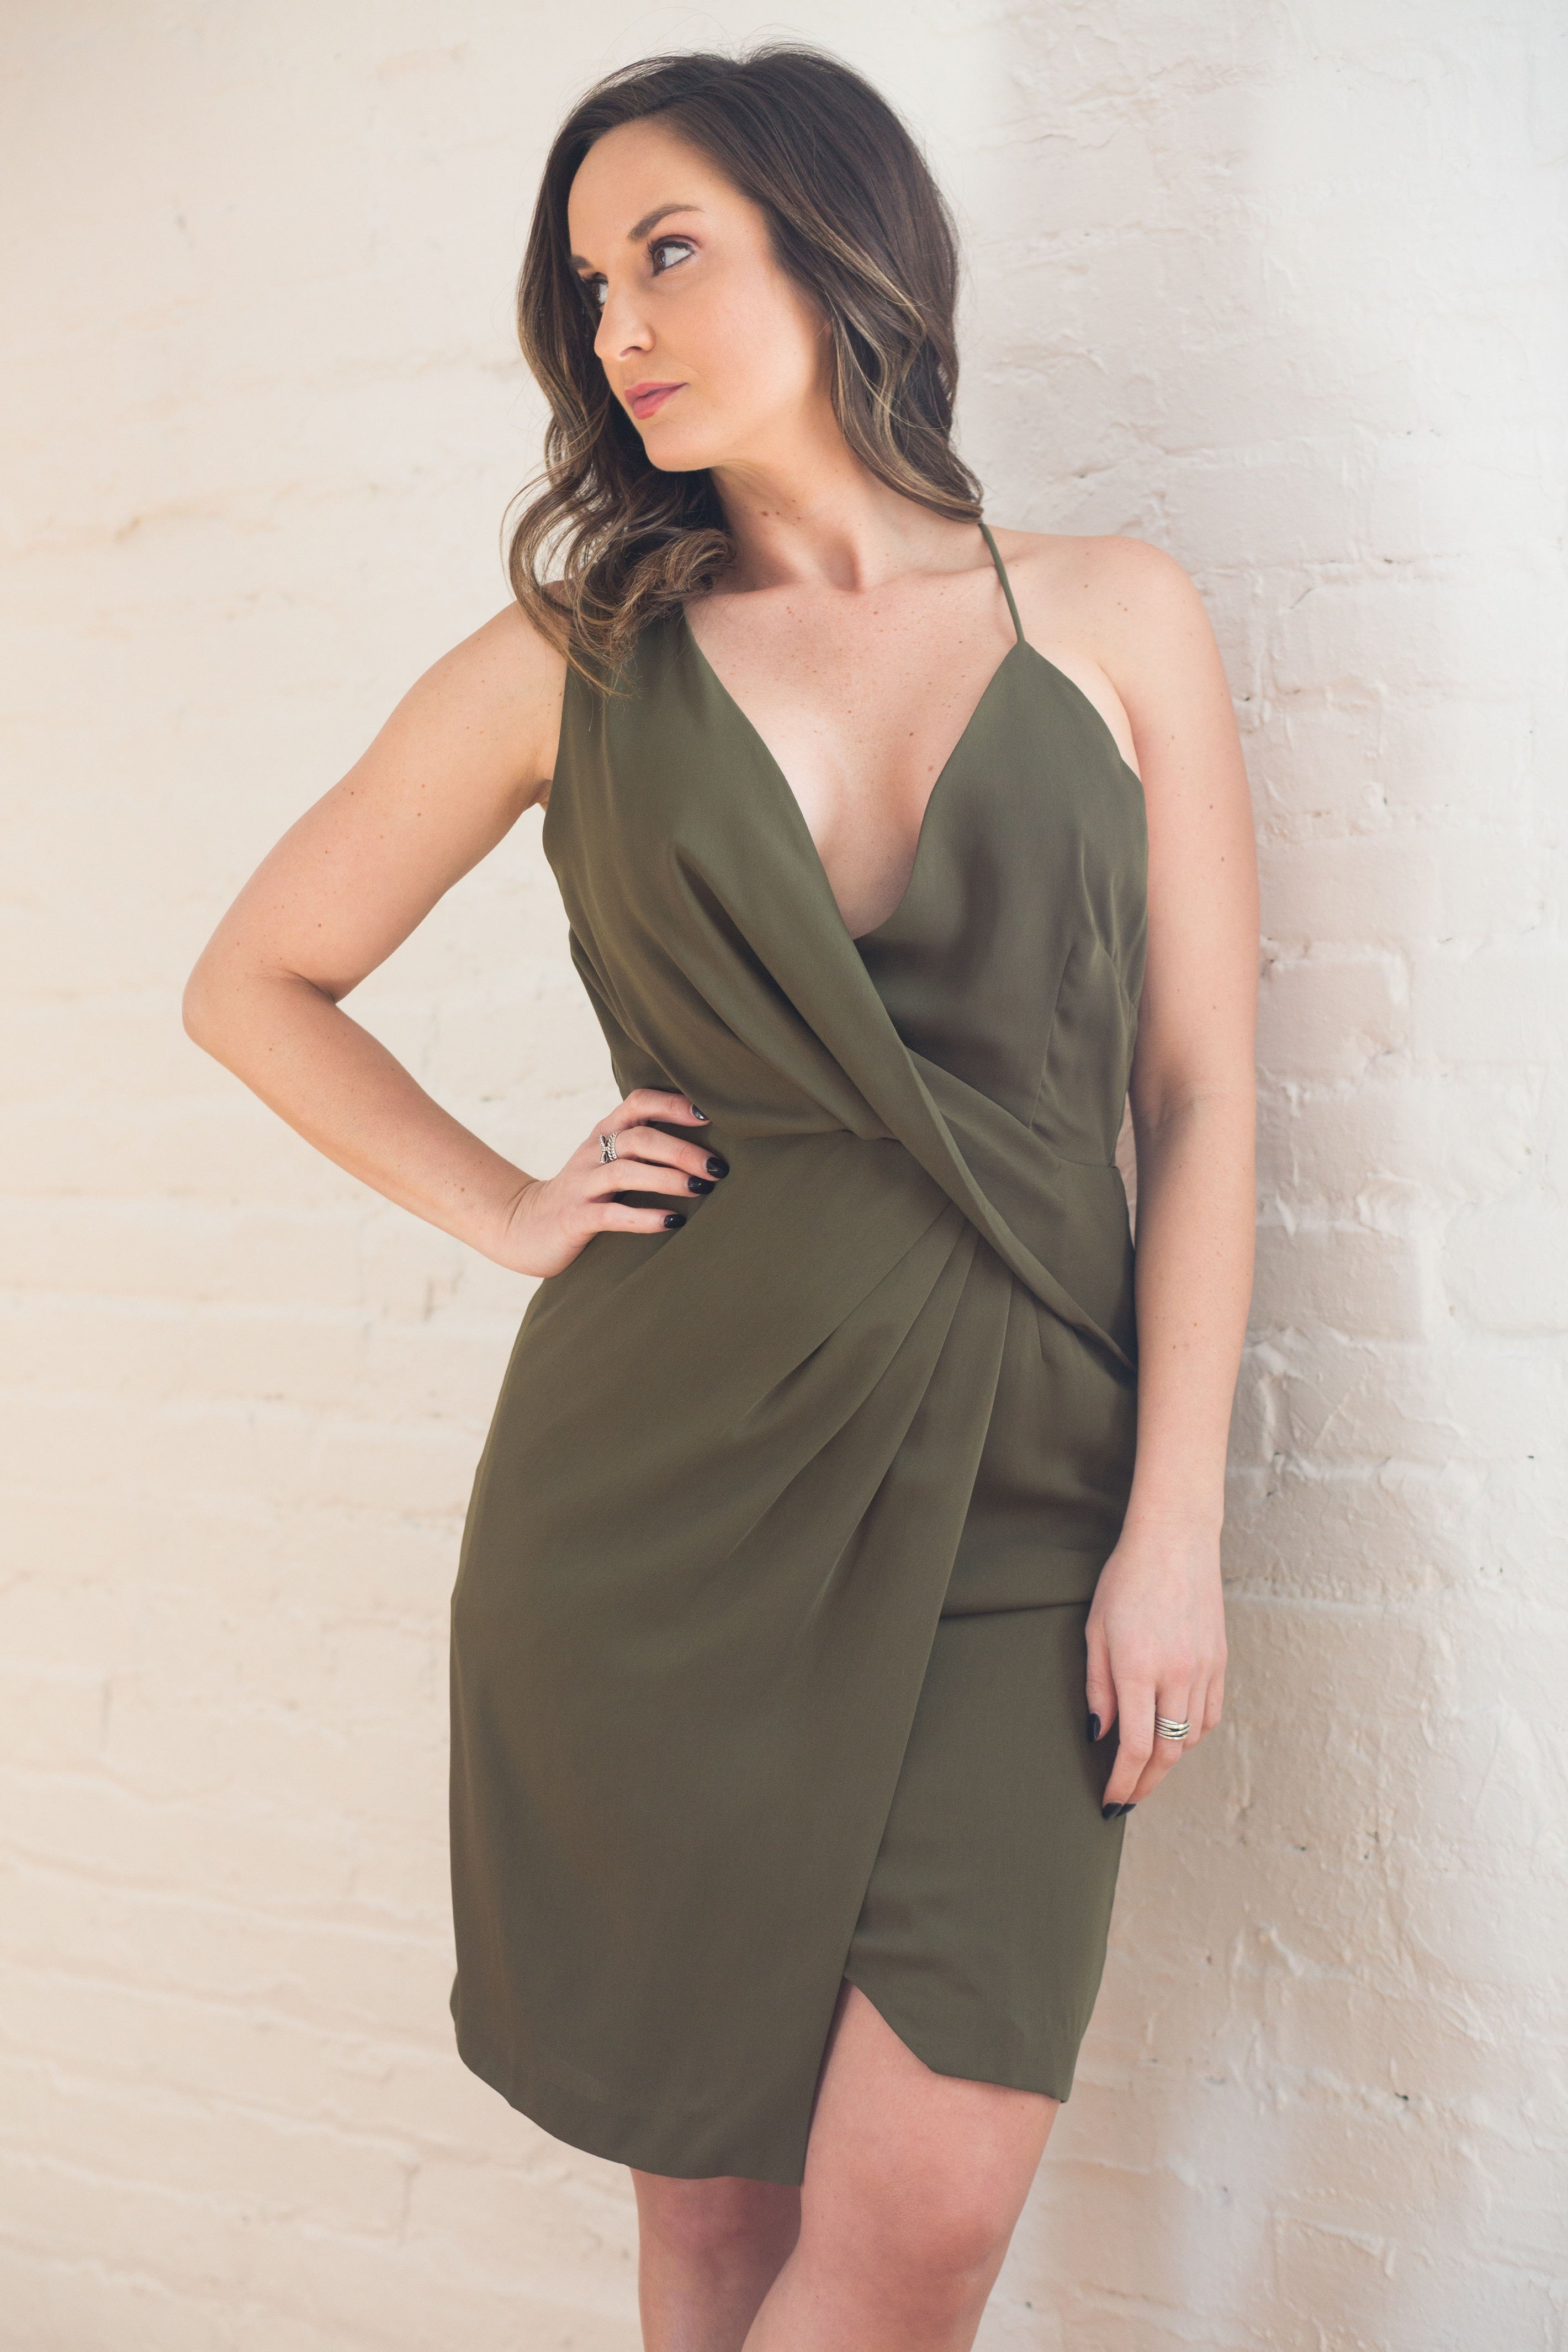 Hopeless Romantic Asymmetrical Olive Dress - impromptu boutique